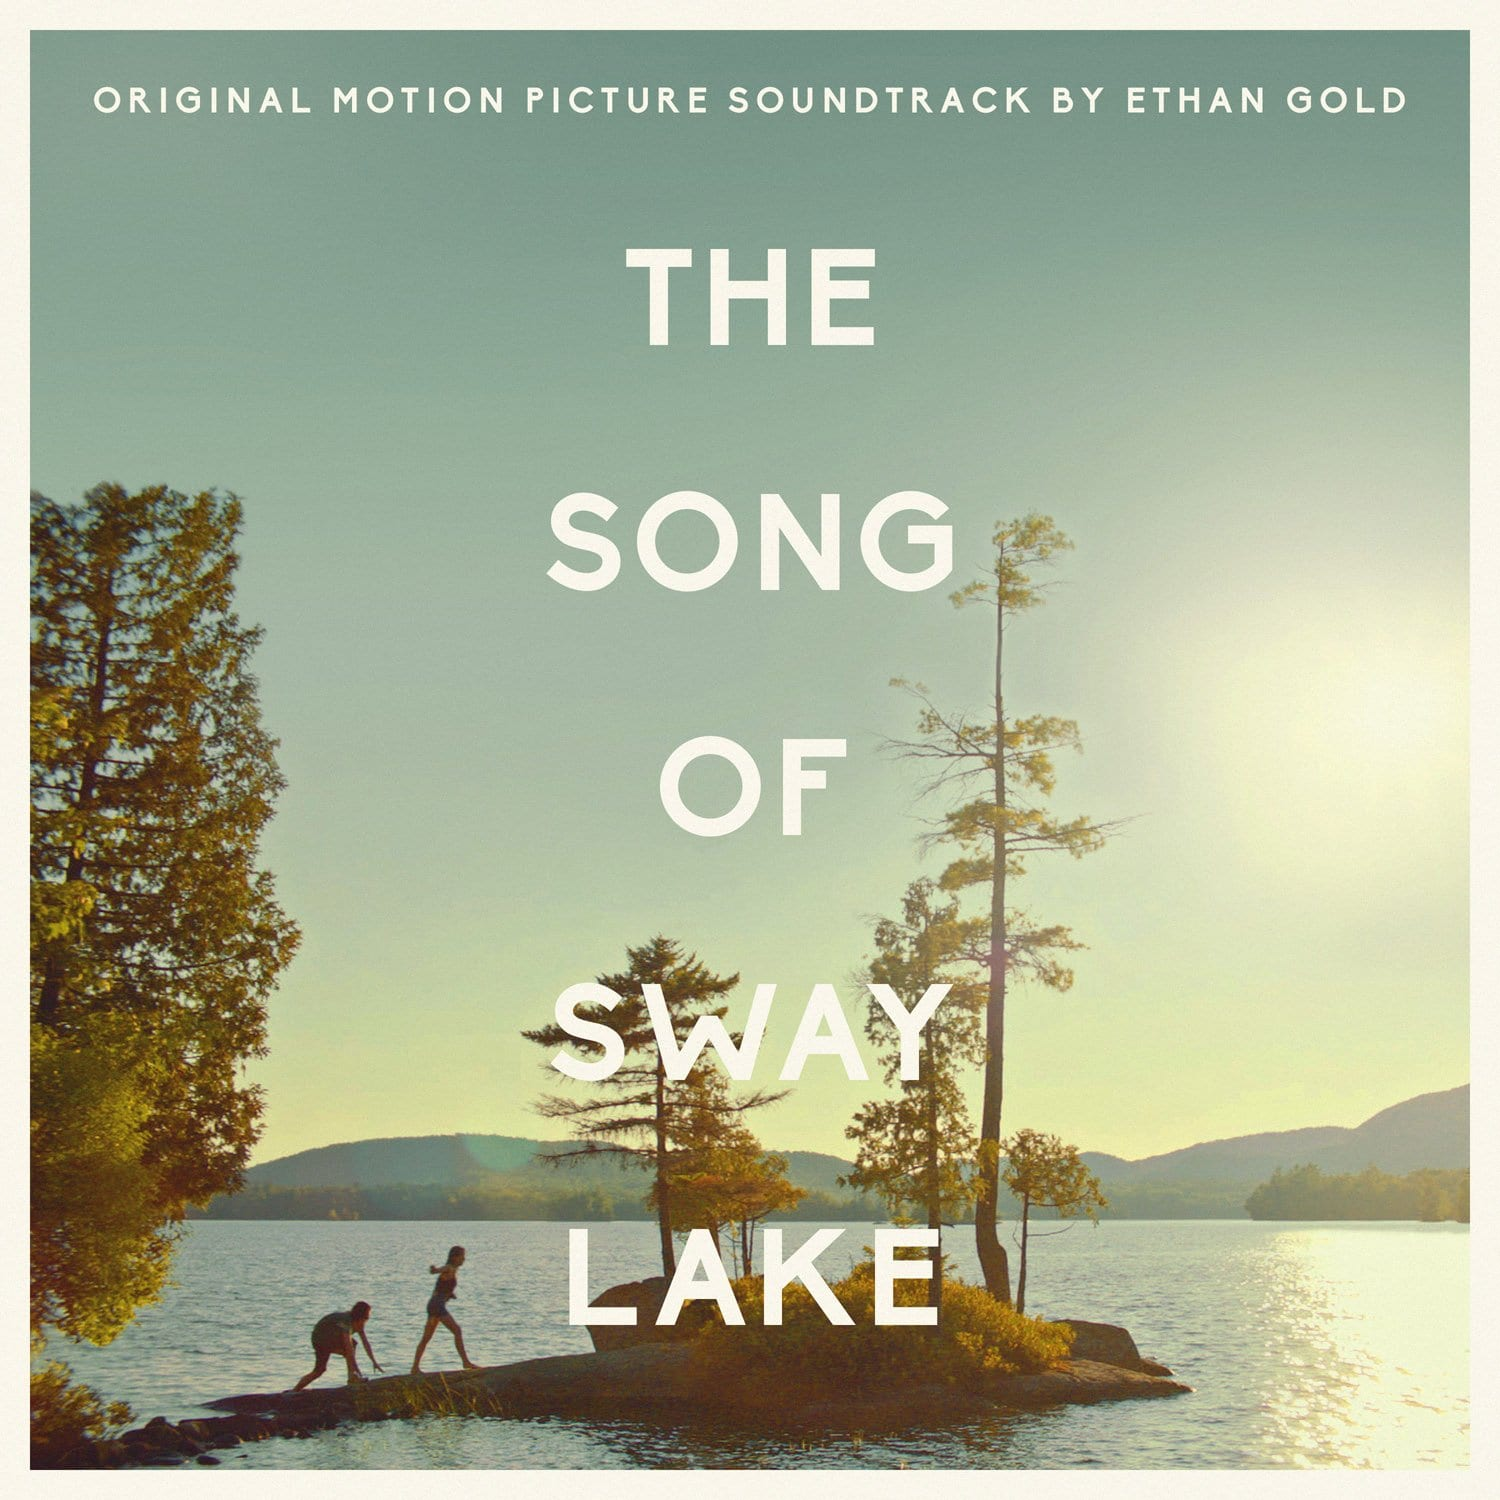 PRESS RELEASE – THE SONG OF SWAY LAKE (ORIGINAL MOTION PICTURE SOUNDTRACK)